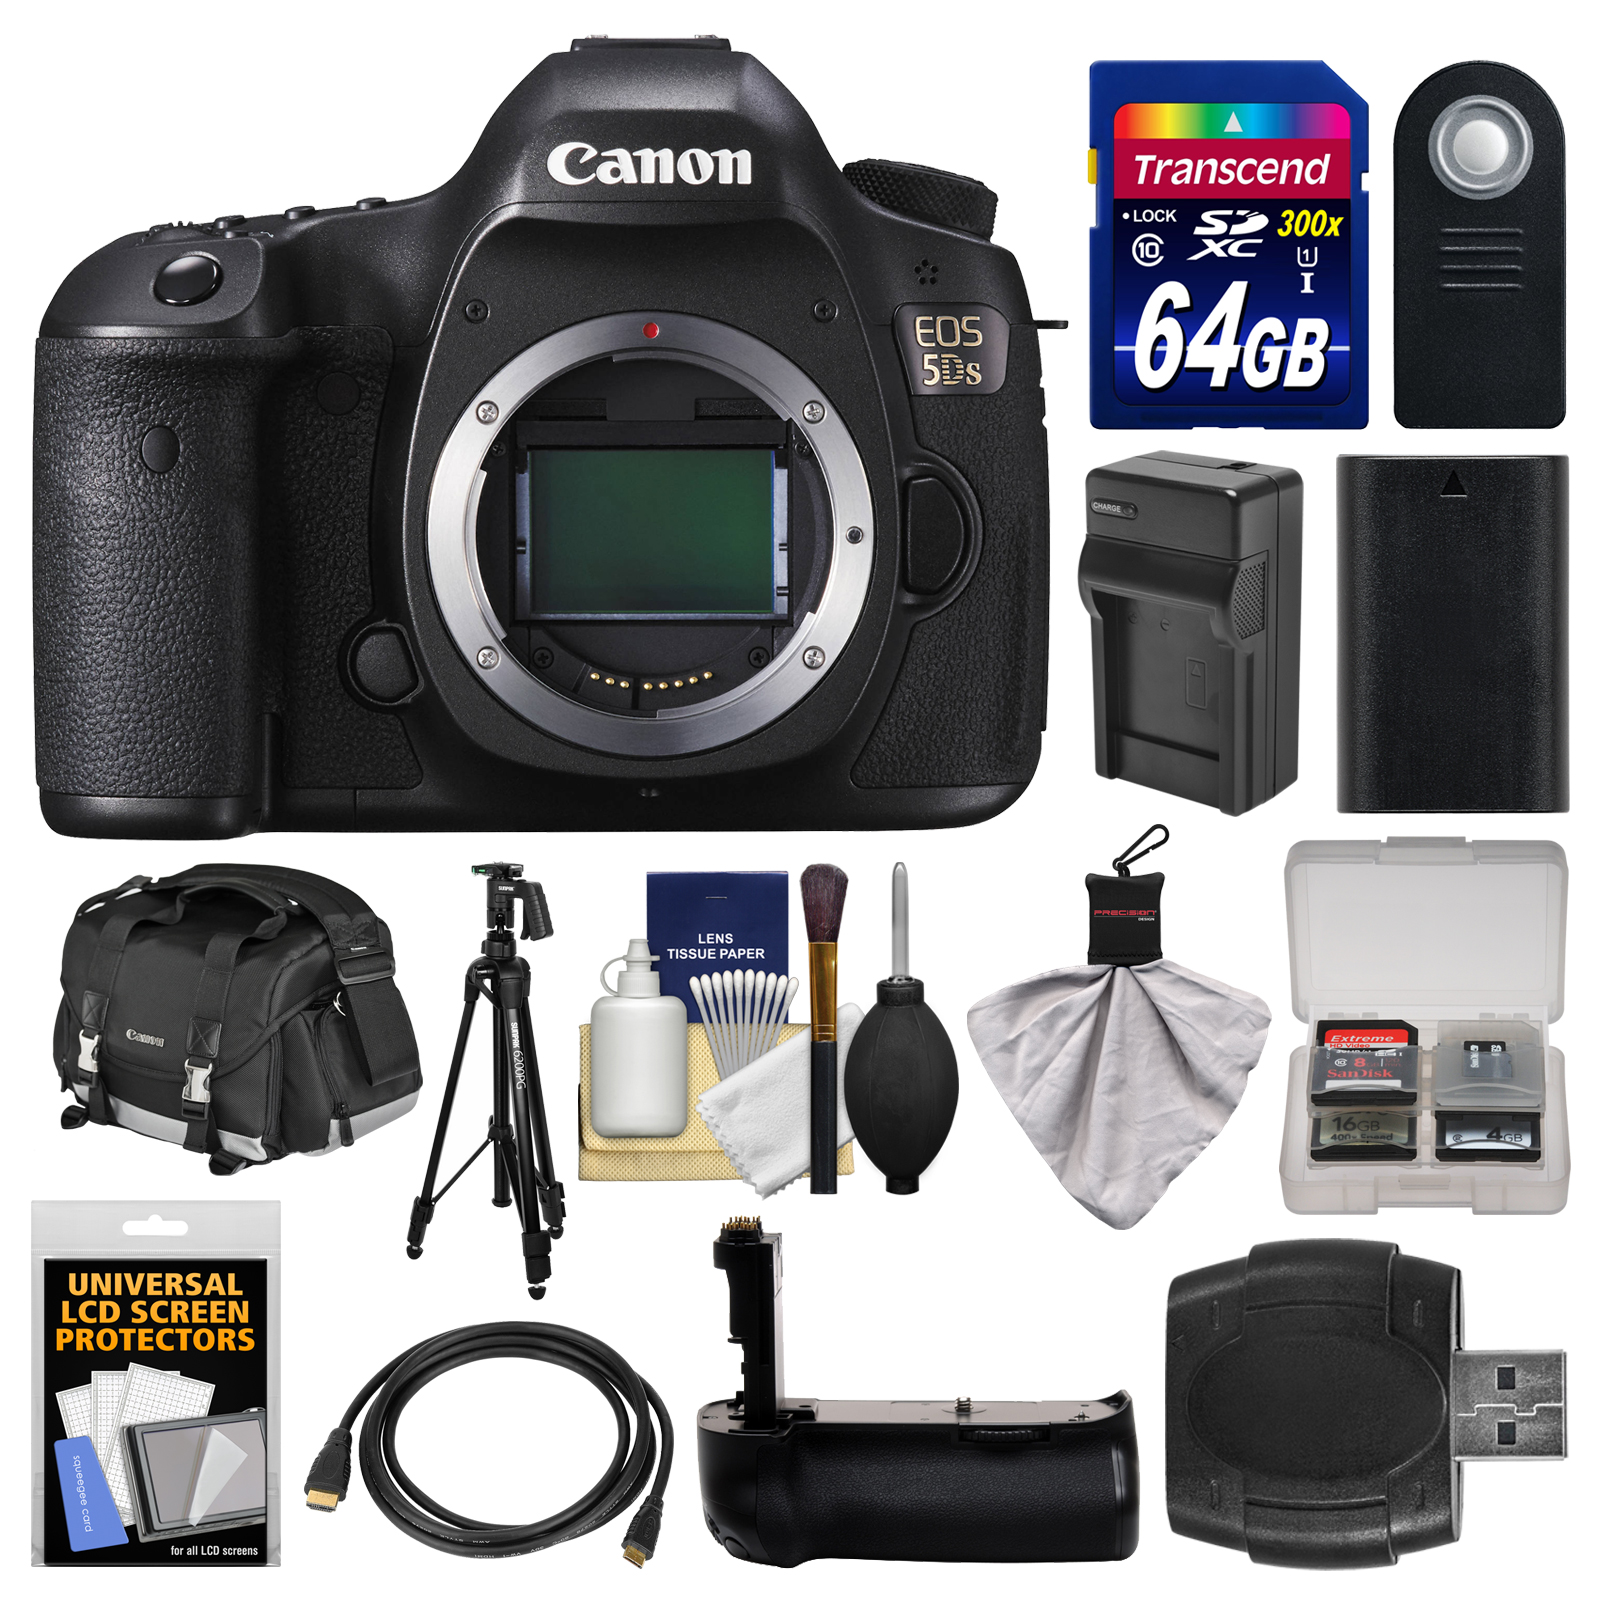 Canon EOS 5DS Digital SLR Camera Body with 64GB Card + Case + Battery & Charger + Grip + Tripod + Remote + Kit by Canon